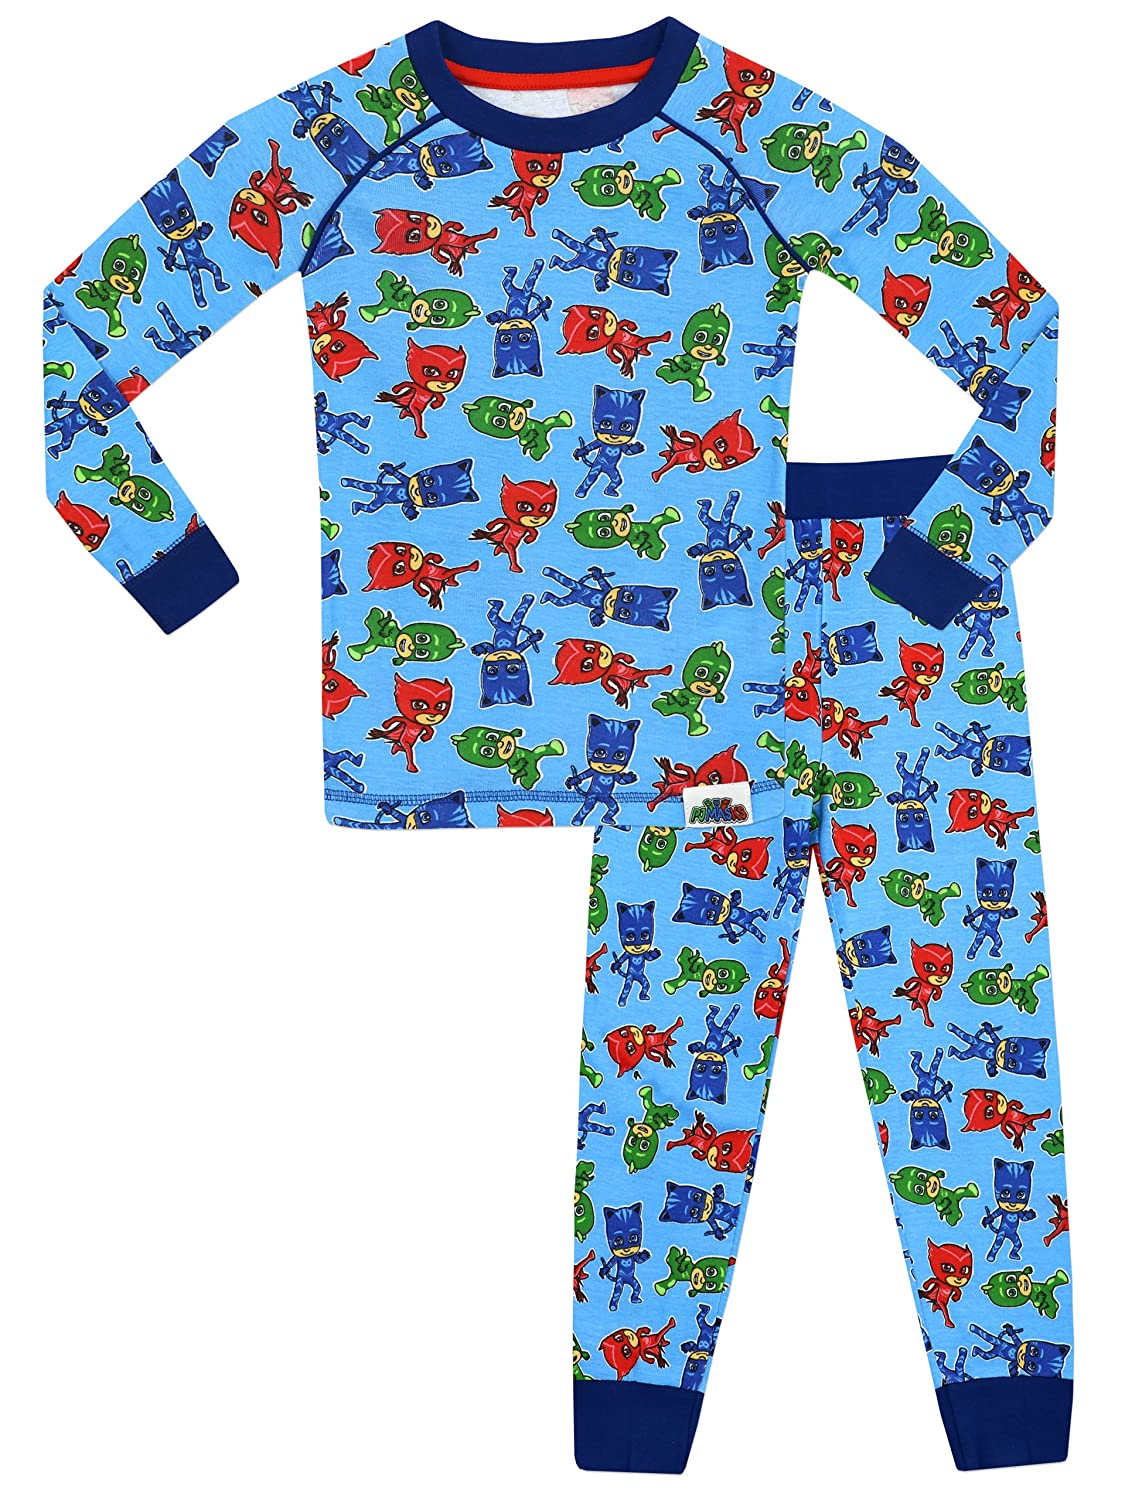 PJ MASKS Boys Pyjamas - Snuggle Fit - Ages 3 to 10 Years